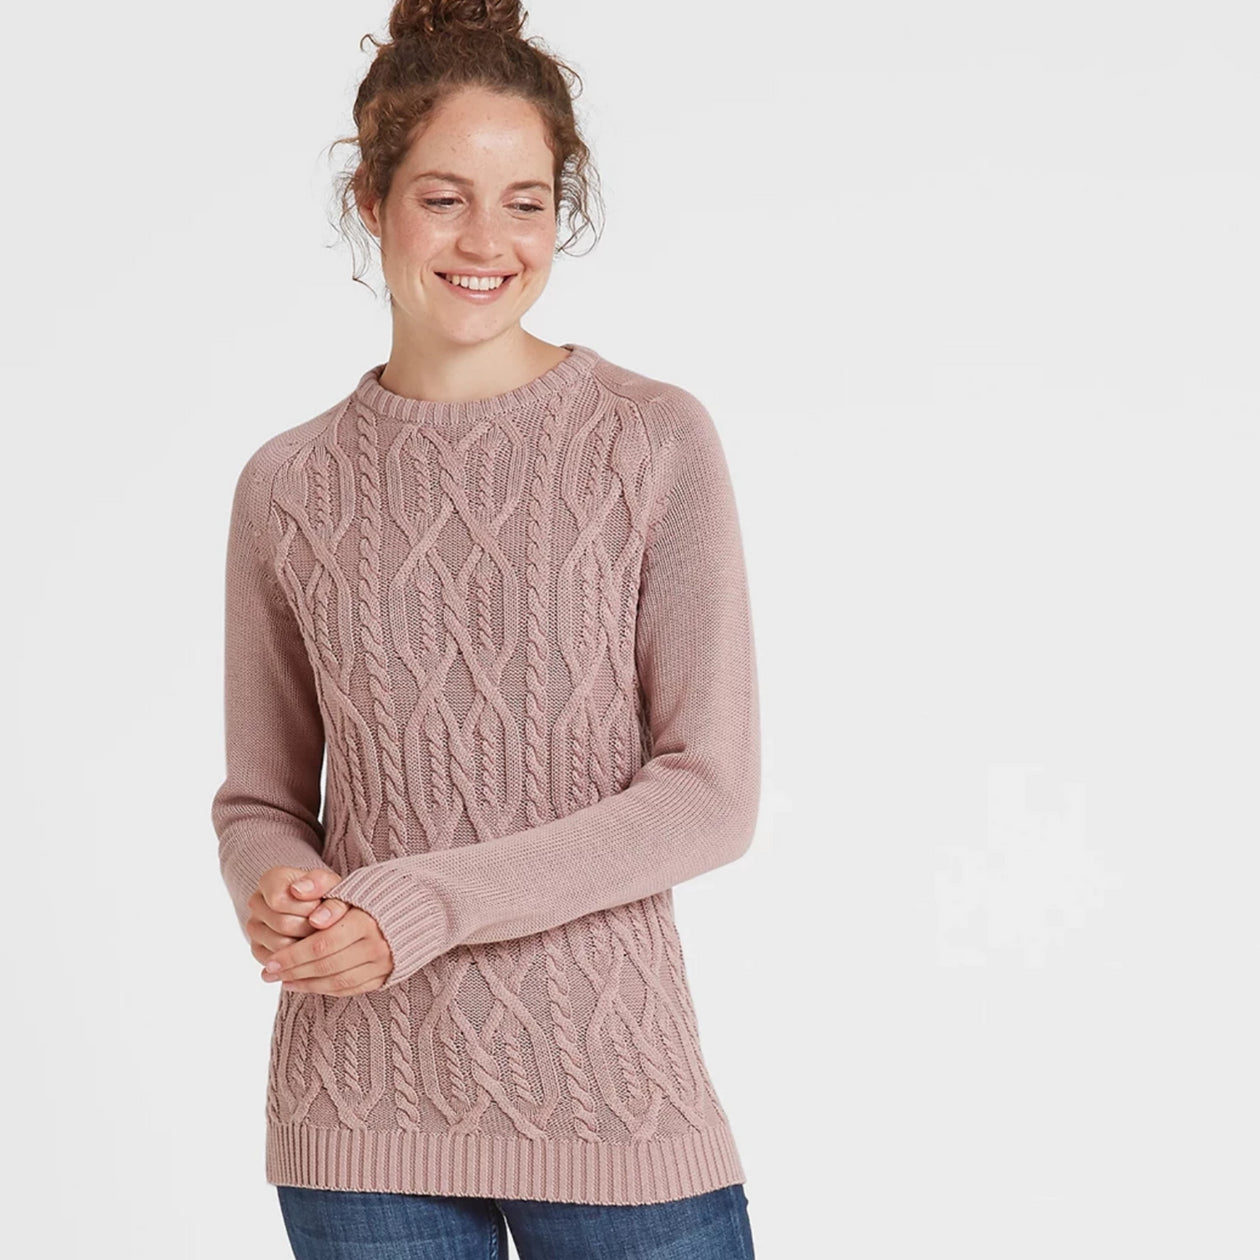 Adele Womens Cable Knit Jumper - Rose Pink image 4